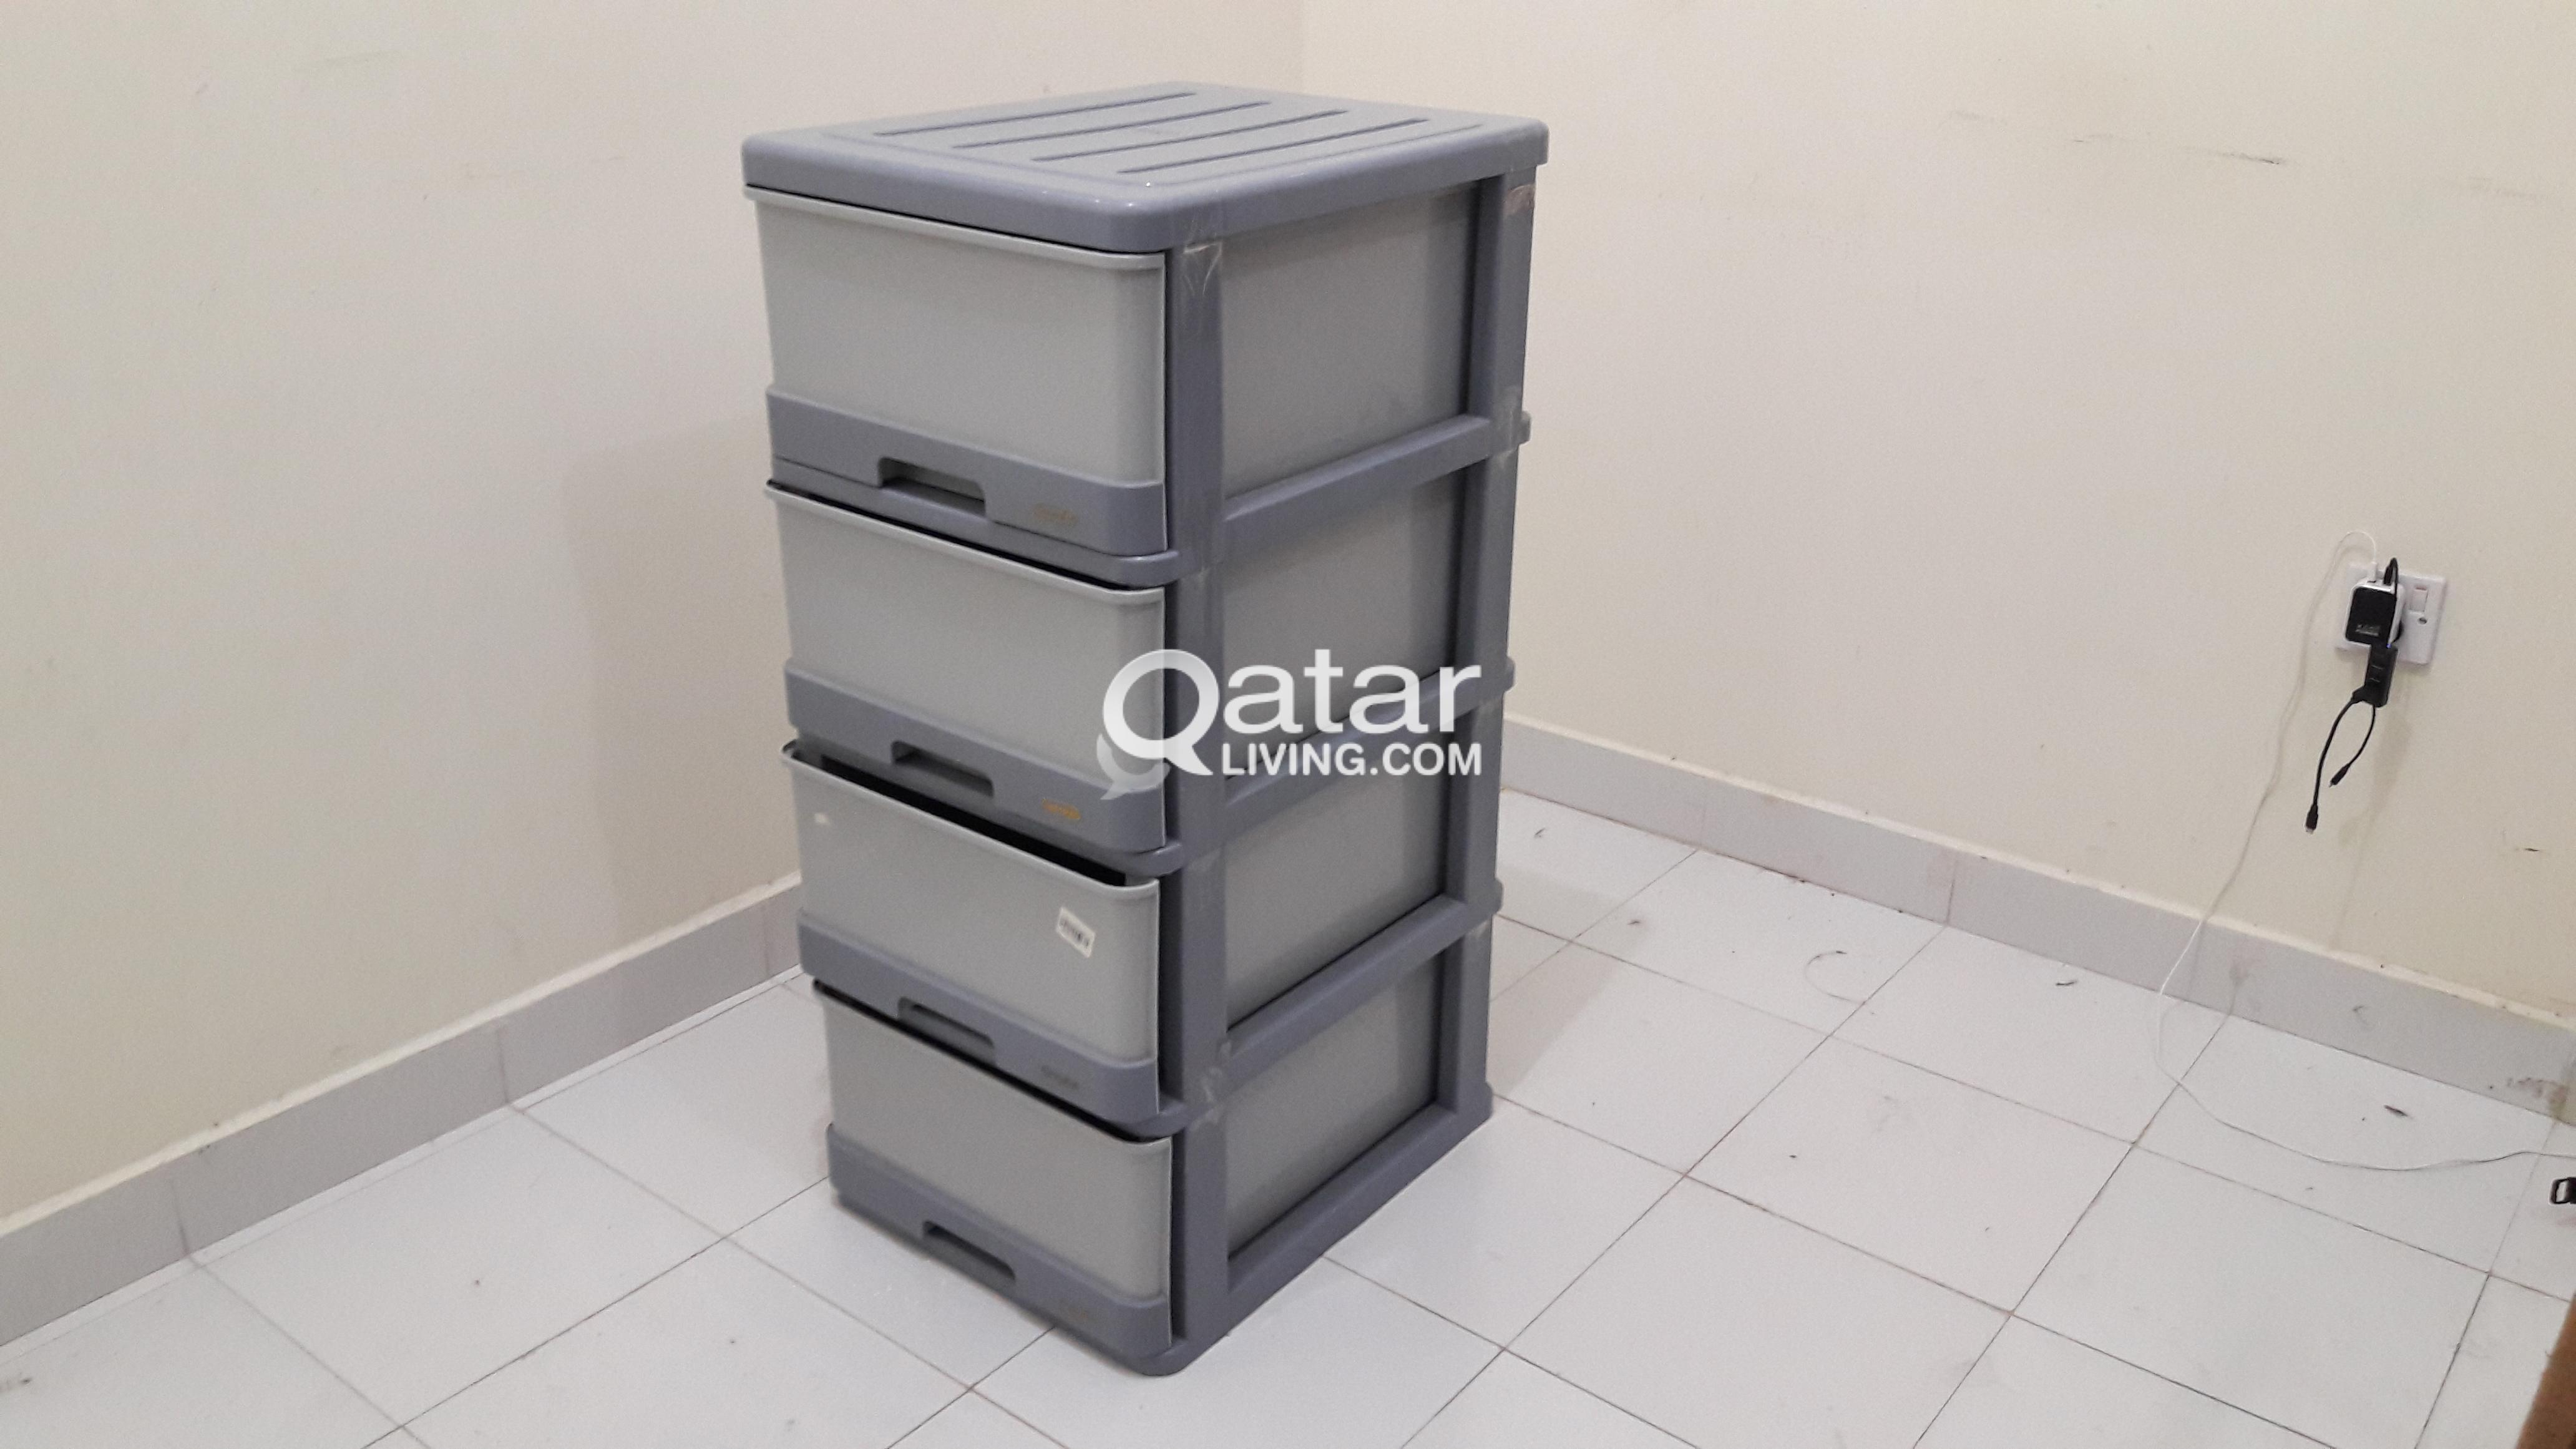 viper storage red filing old photo tool unit vxxl casters helmer plastic drawers drawer amazing cupboard metal with dividers nz bl on astounding captivating box cabinet parts ikea images slides